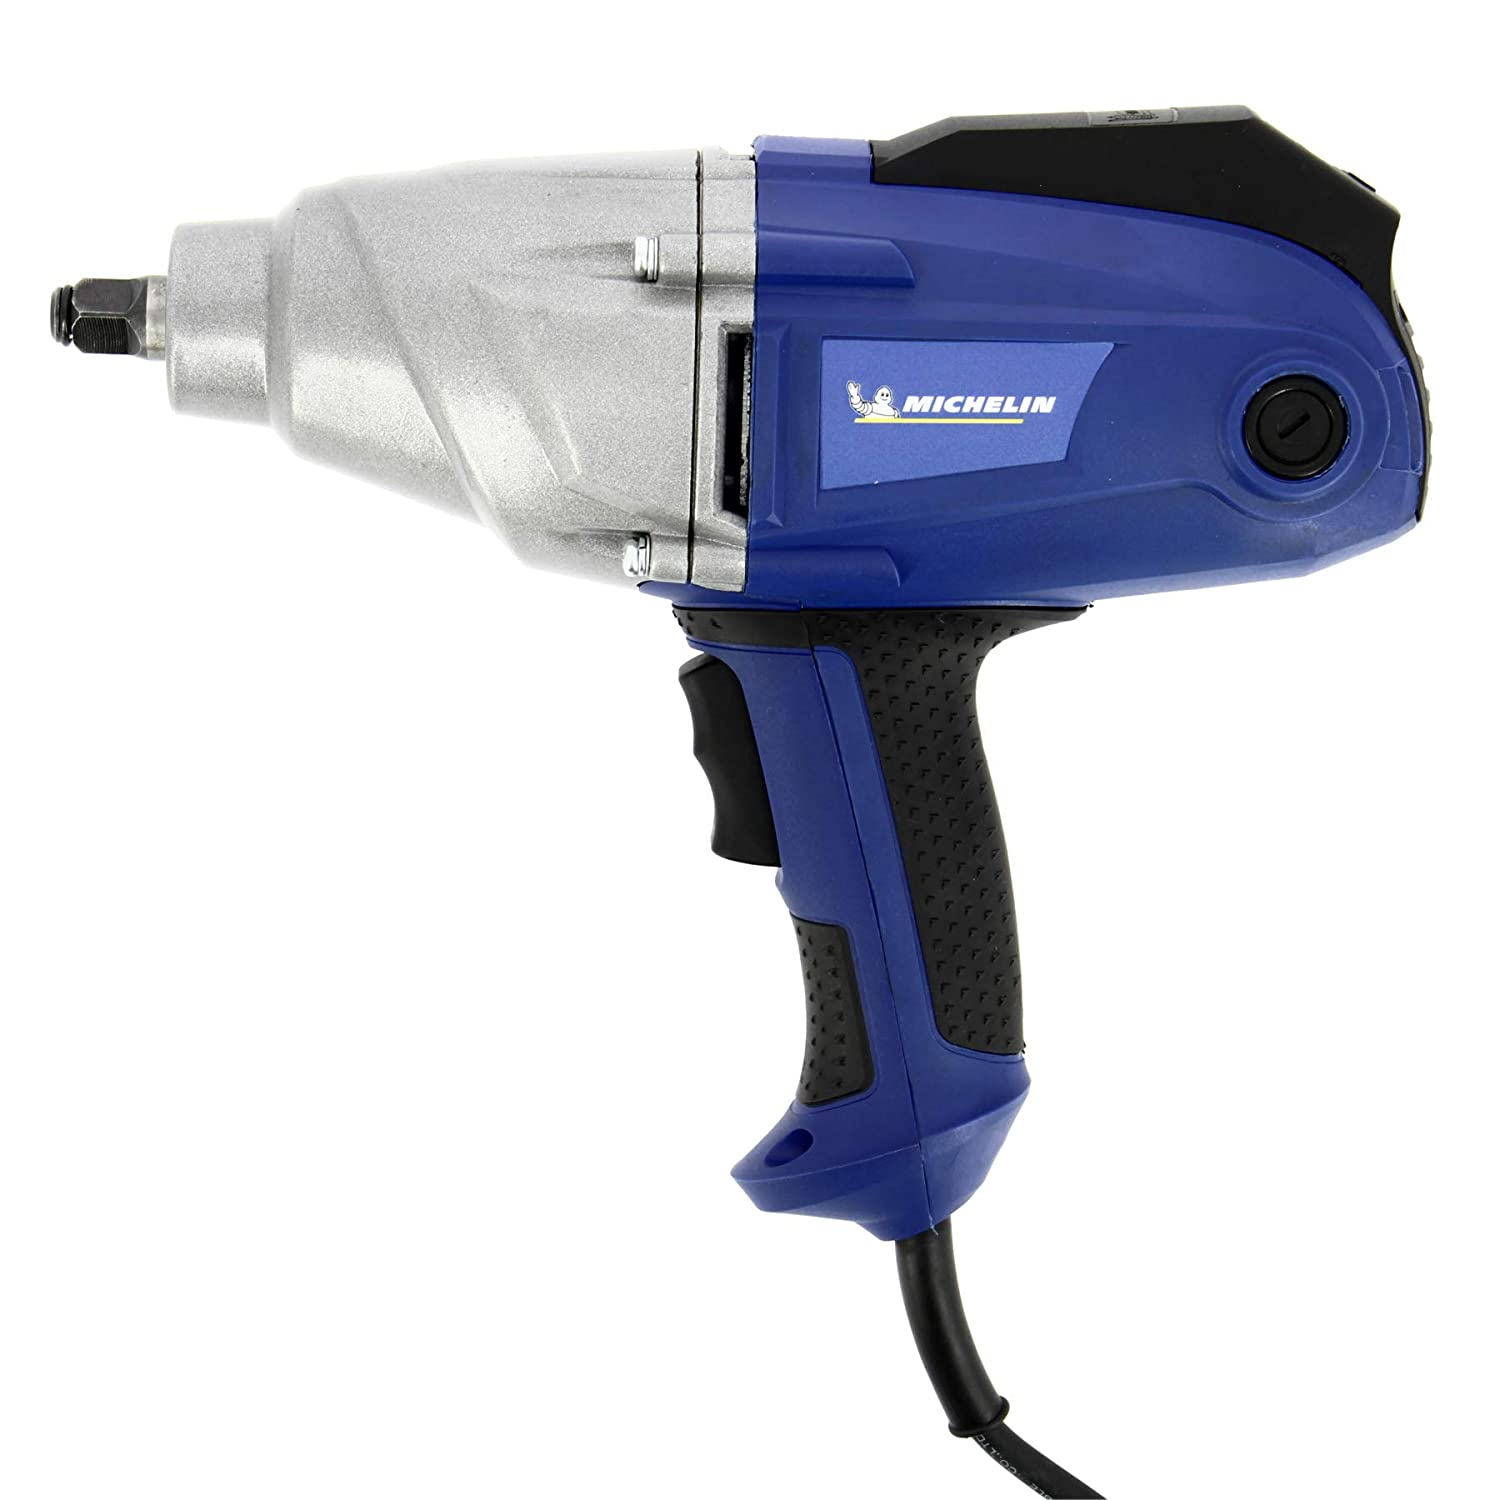 Michelin 602020090 Impact Wrench